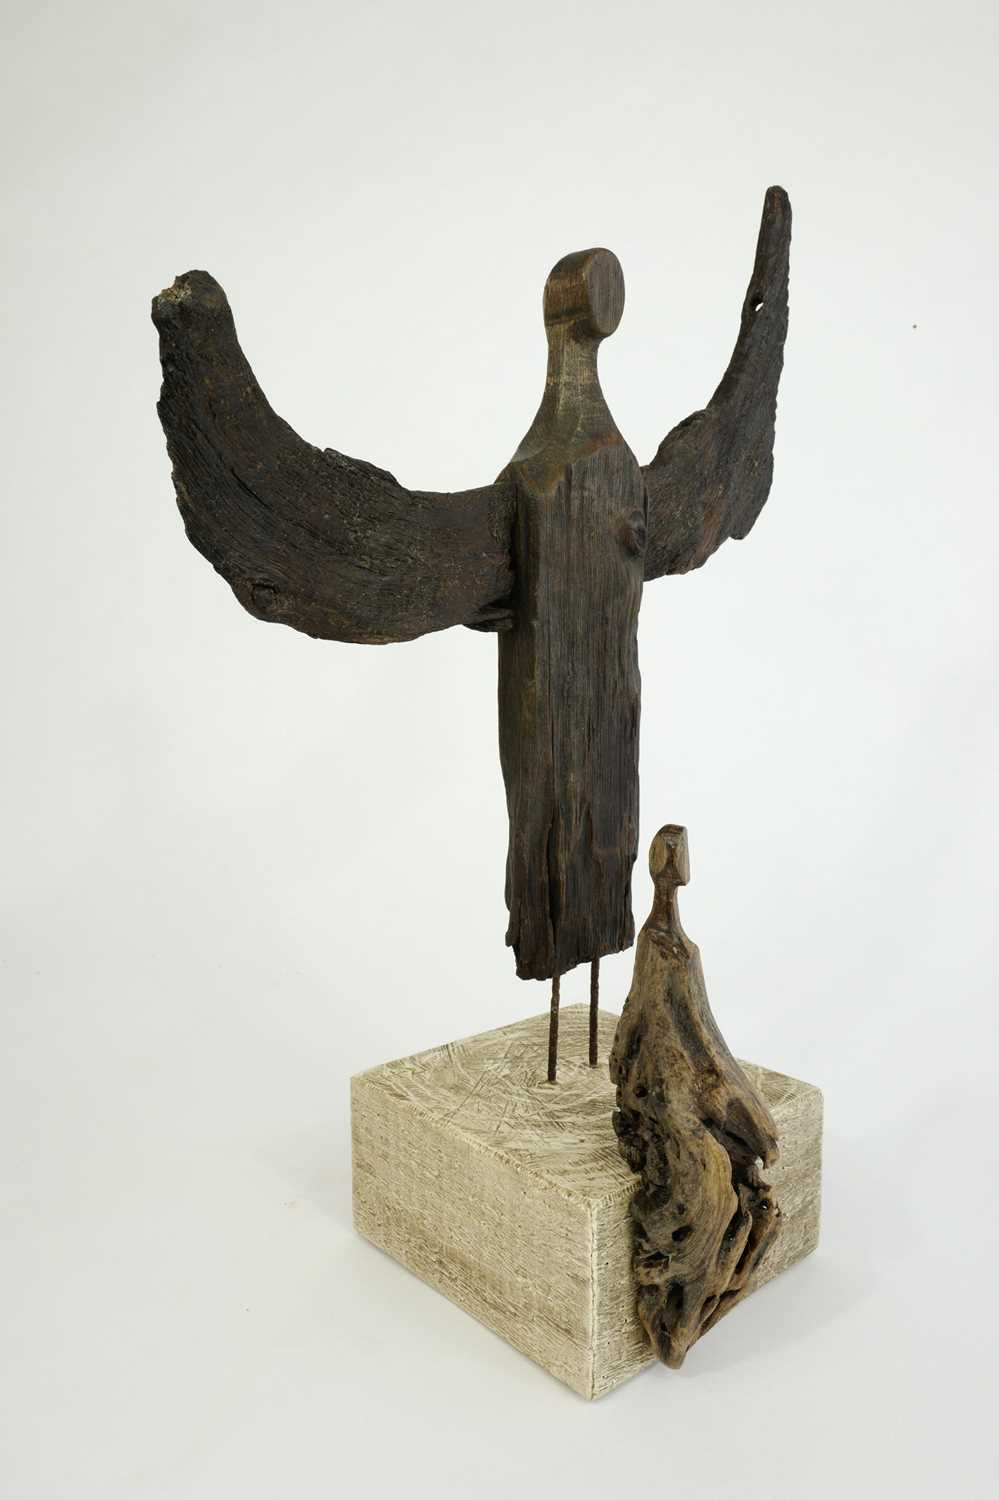 Roger Hardy The Guardian Sculpture & Visit to the Artist's Studio in Suffolk The Guardian - Image 2 of 2